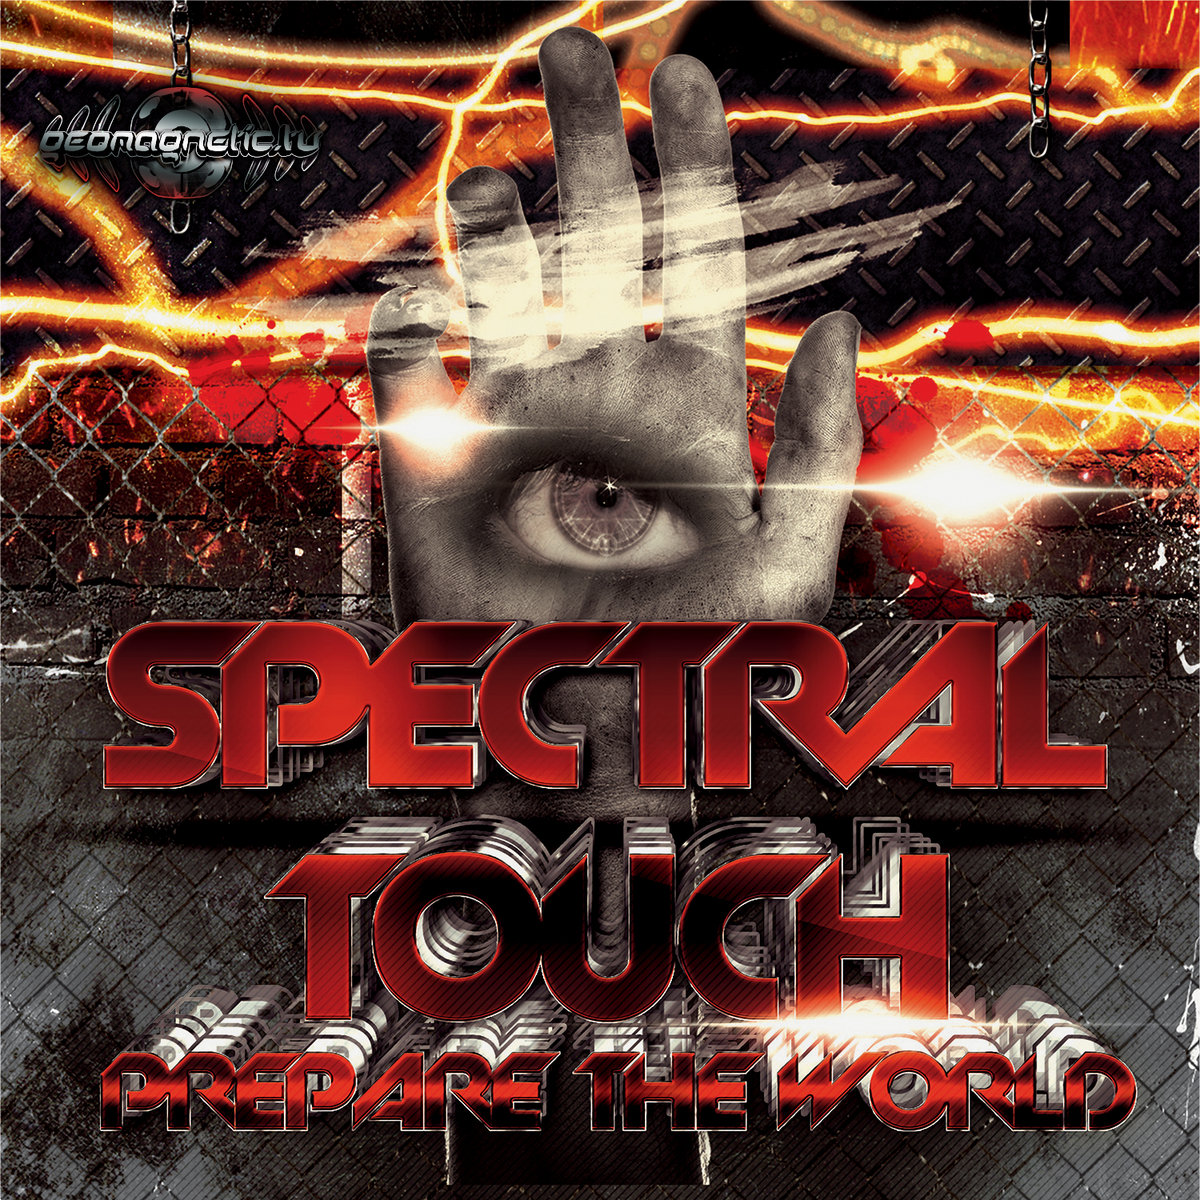 Spectral Touch - Prepare the World @ 'Prepare the World' album (electronic, goa)